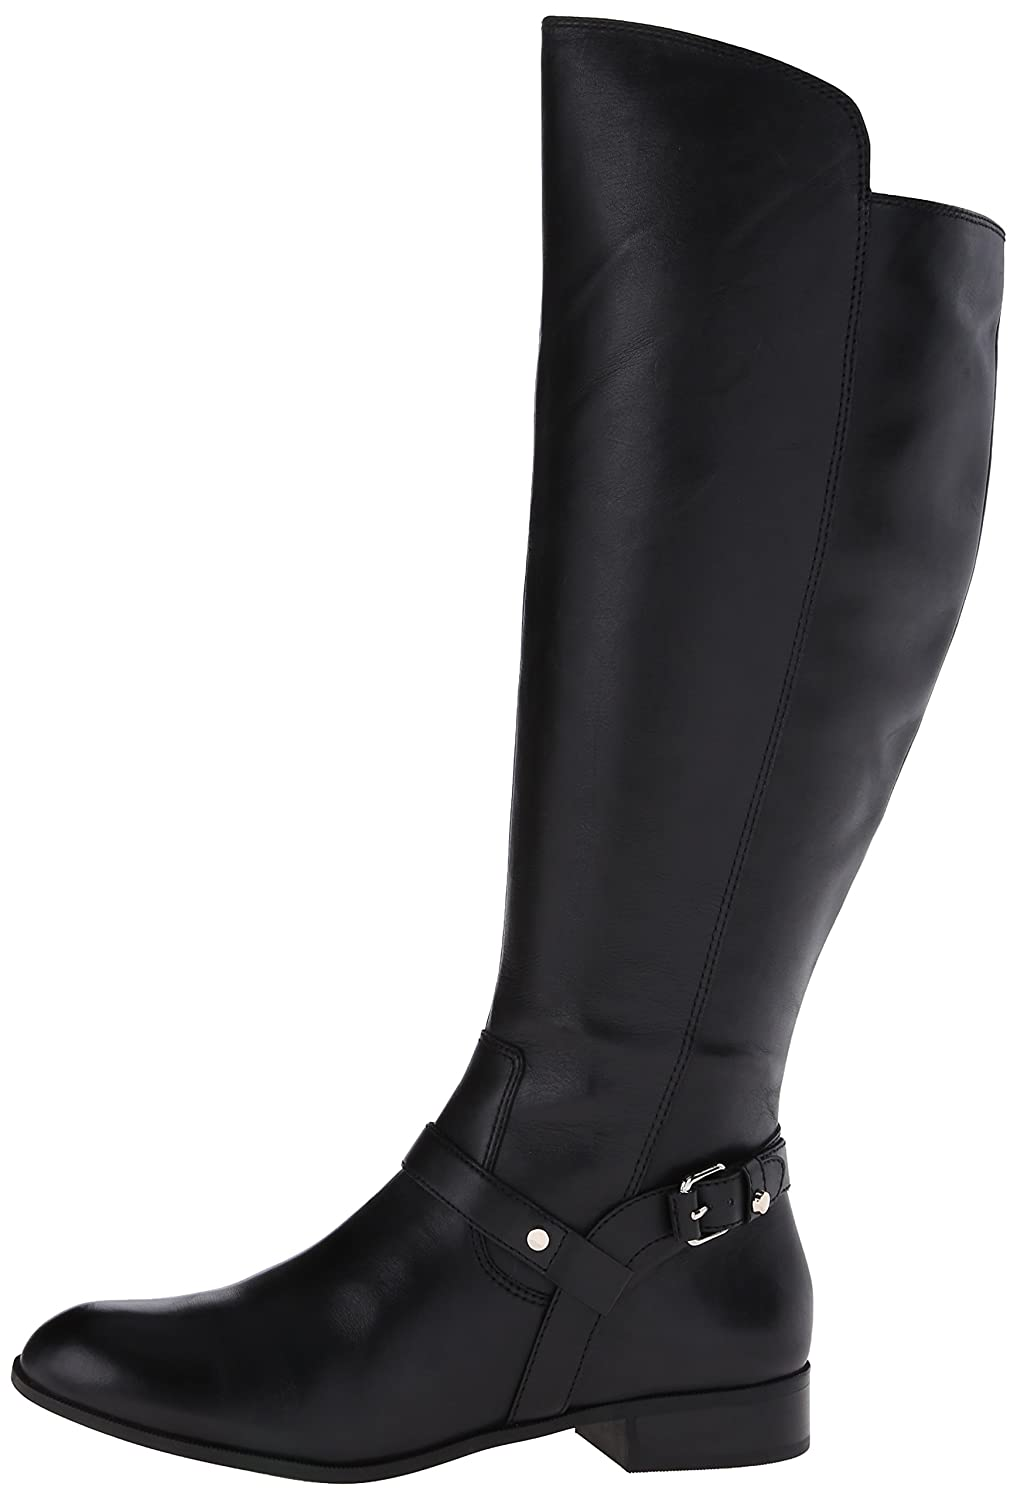 1f5717eaf35 Anne Klein Women's Kahlan Wide Calf Leather Riding Boot